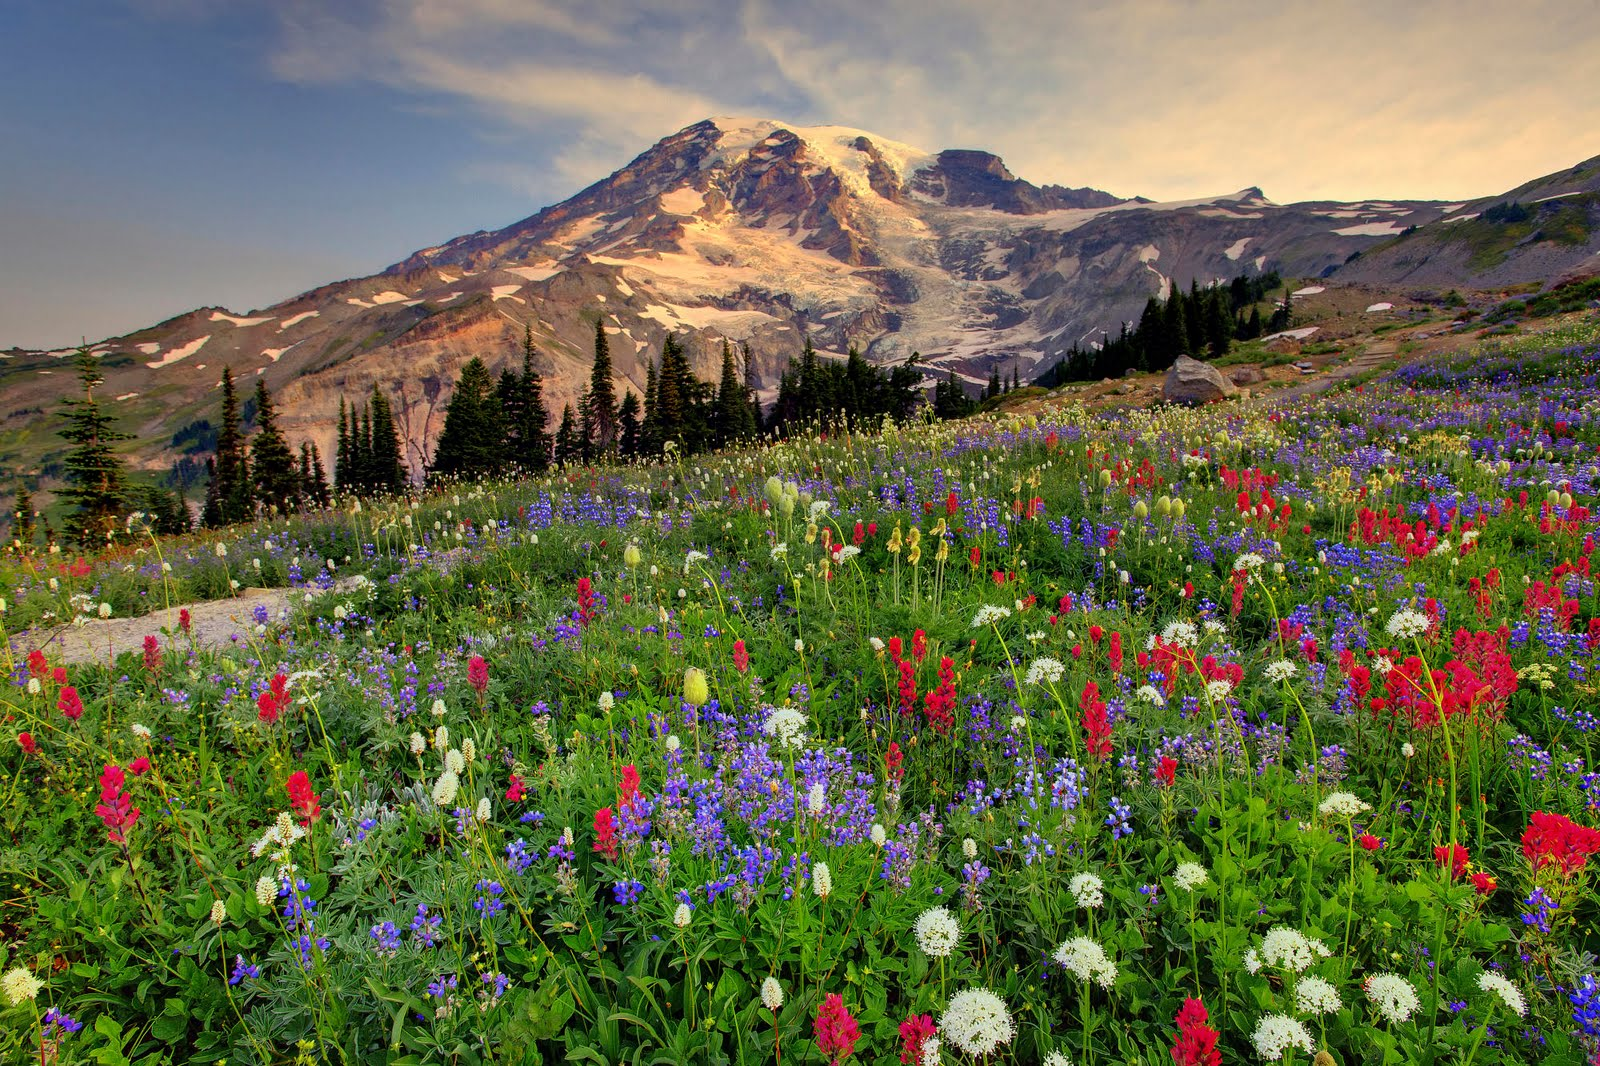 paradise mount rainier HD wallpapers HD HD Wallpaper 1jpg 1600x1066